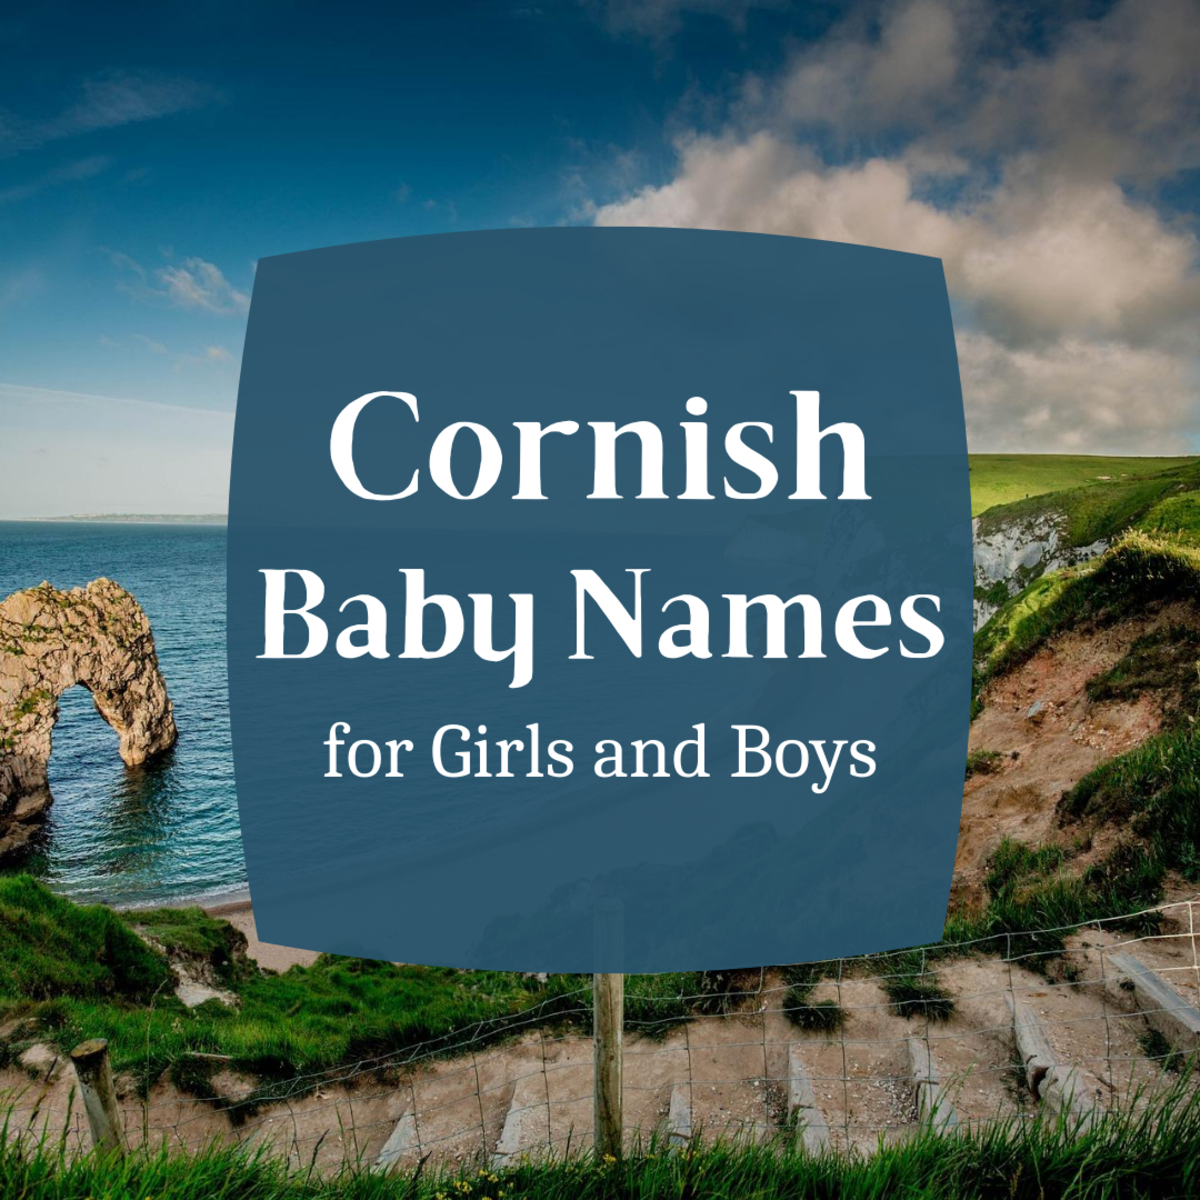 If you're seeking a baby name that's traditional yet still unusual, consider one of these Cornish names. This article includes ideas for girls' names, boys' names and unisex names.